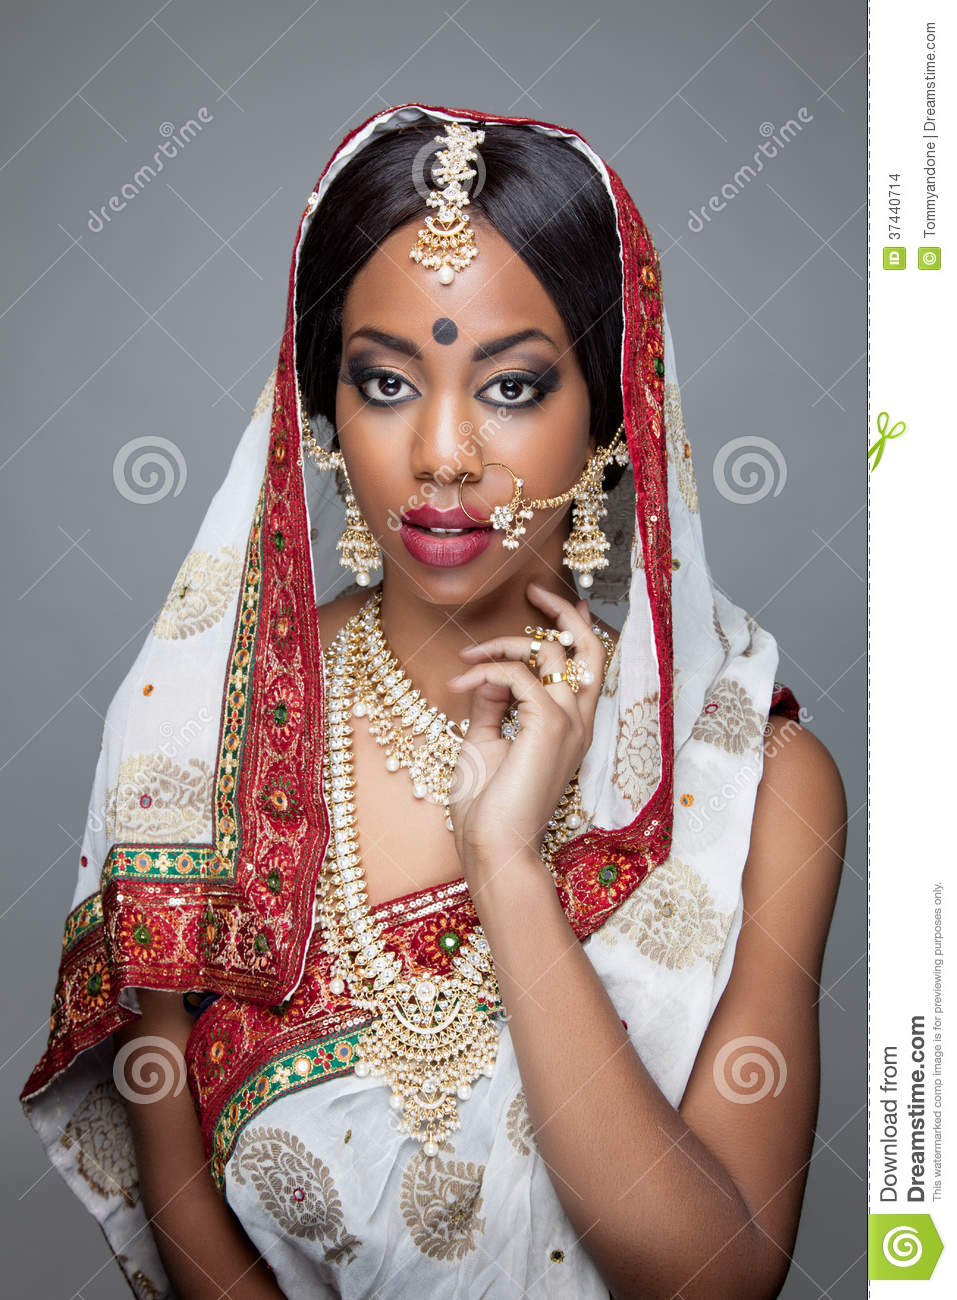 Young Indian woman dressed in traditional clothing with bridal makeup